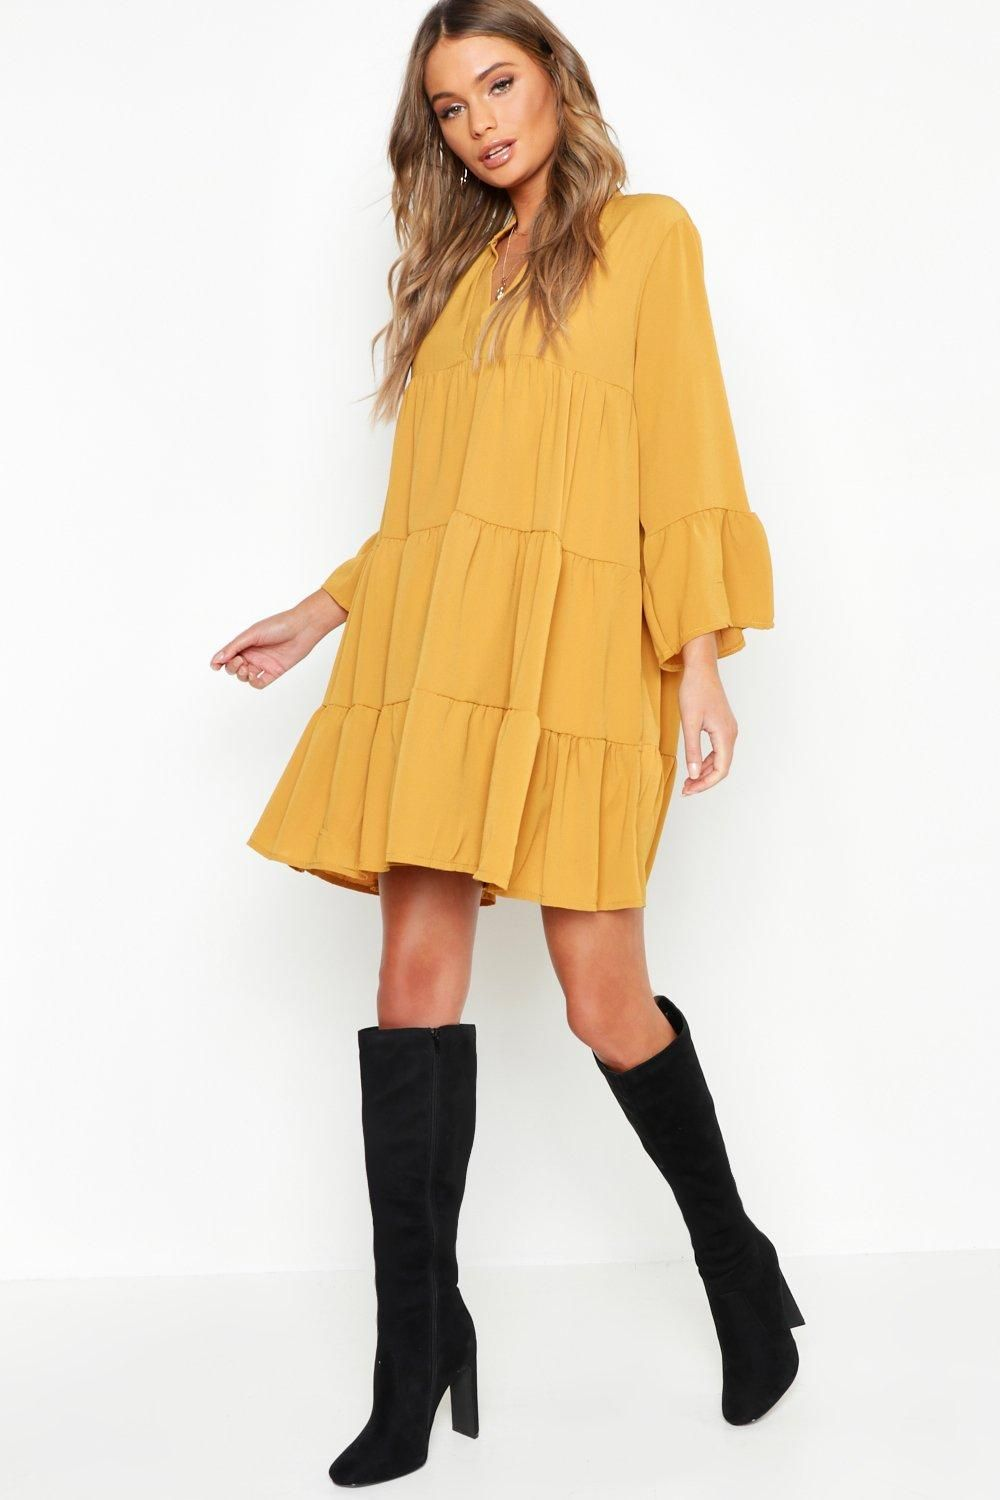 12+ Boohoo exclusive lace insert smock dress inspirations